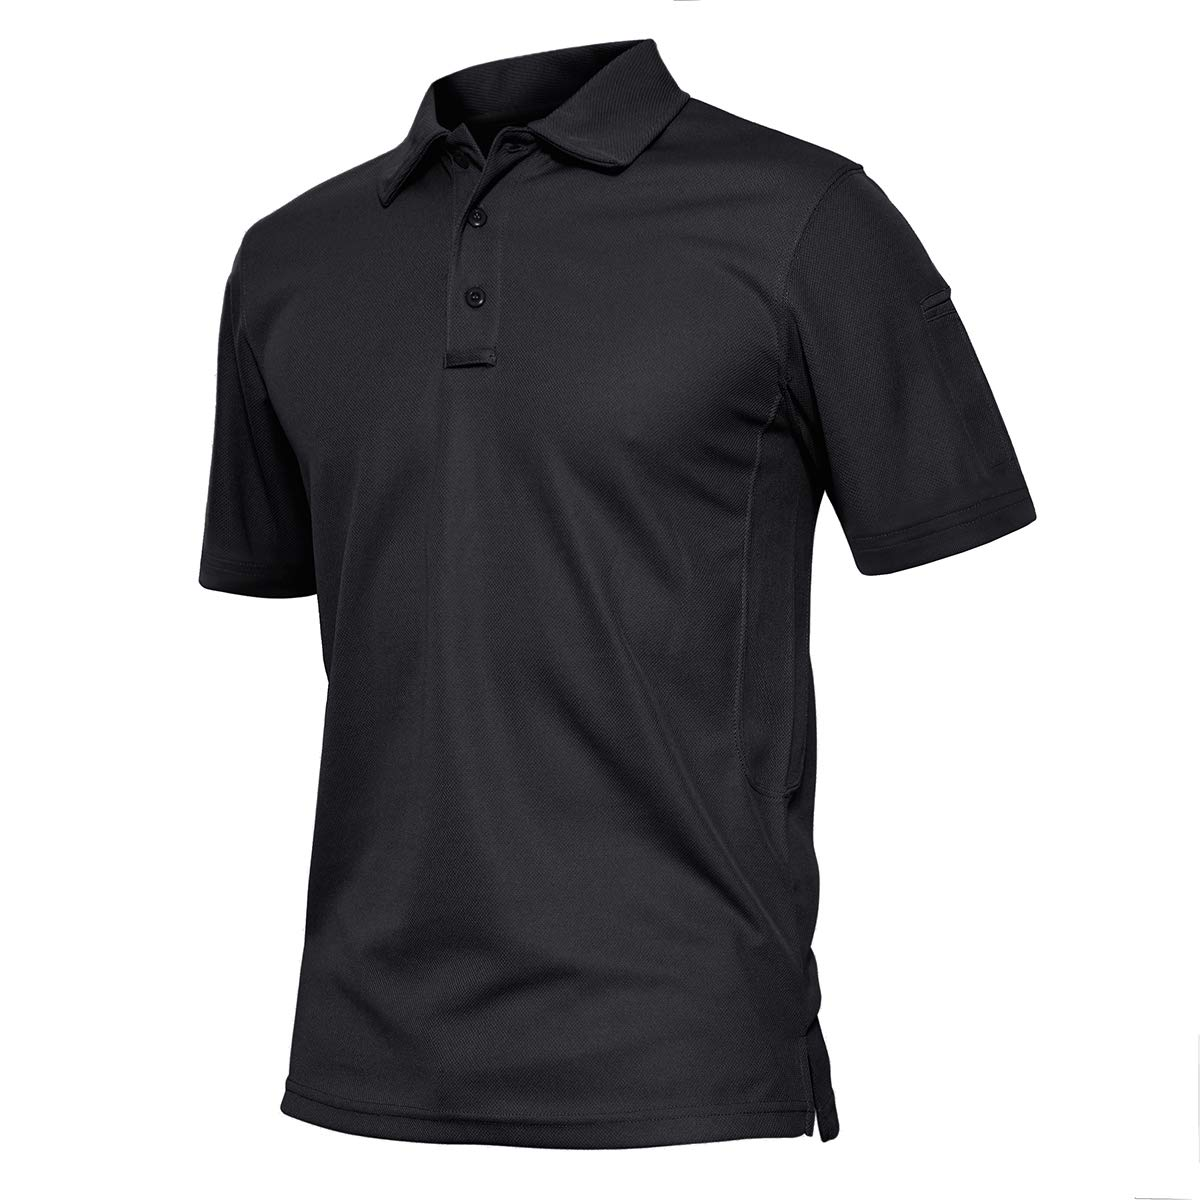 TACVASEN Men's Quick Dry Combat Airsoft Long Sleeve Polo Shirt Top,US XL by TACVASEN